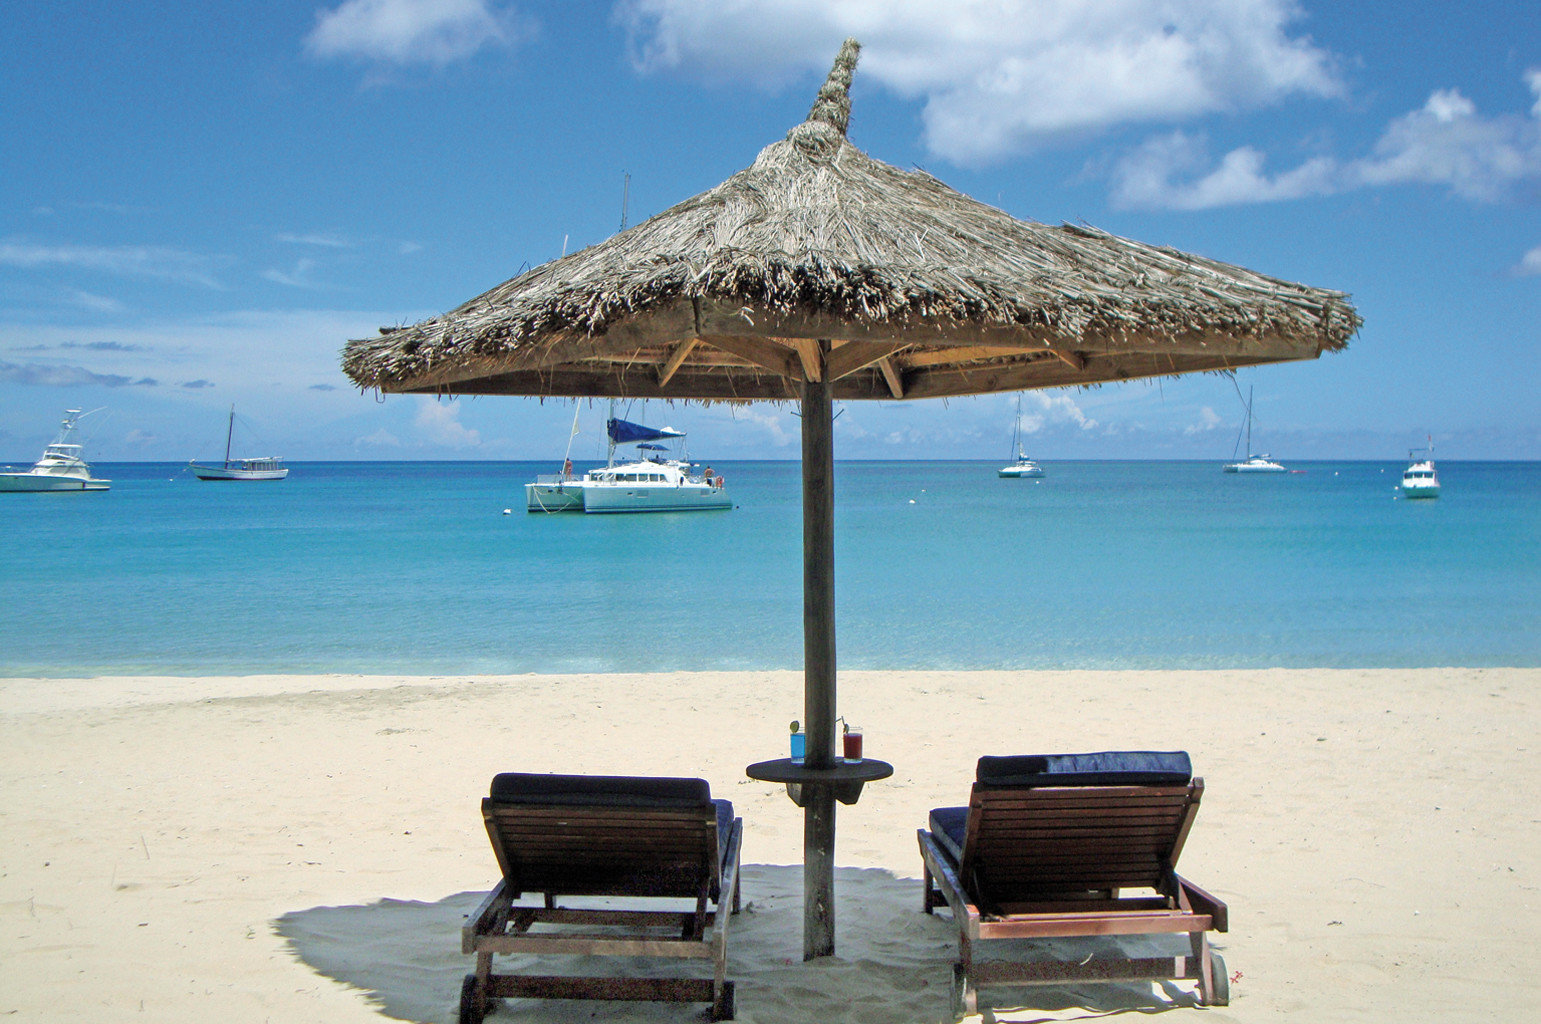 sky water chair umbrella Beach Sea Ocean shore Coast caribbean Island lawn cape pier vehicle travel empty day